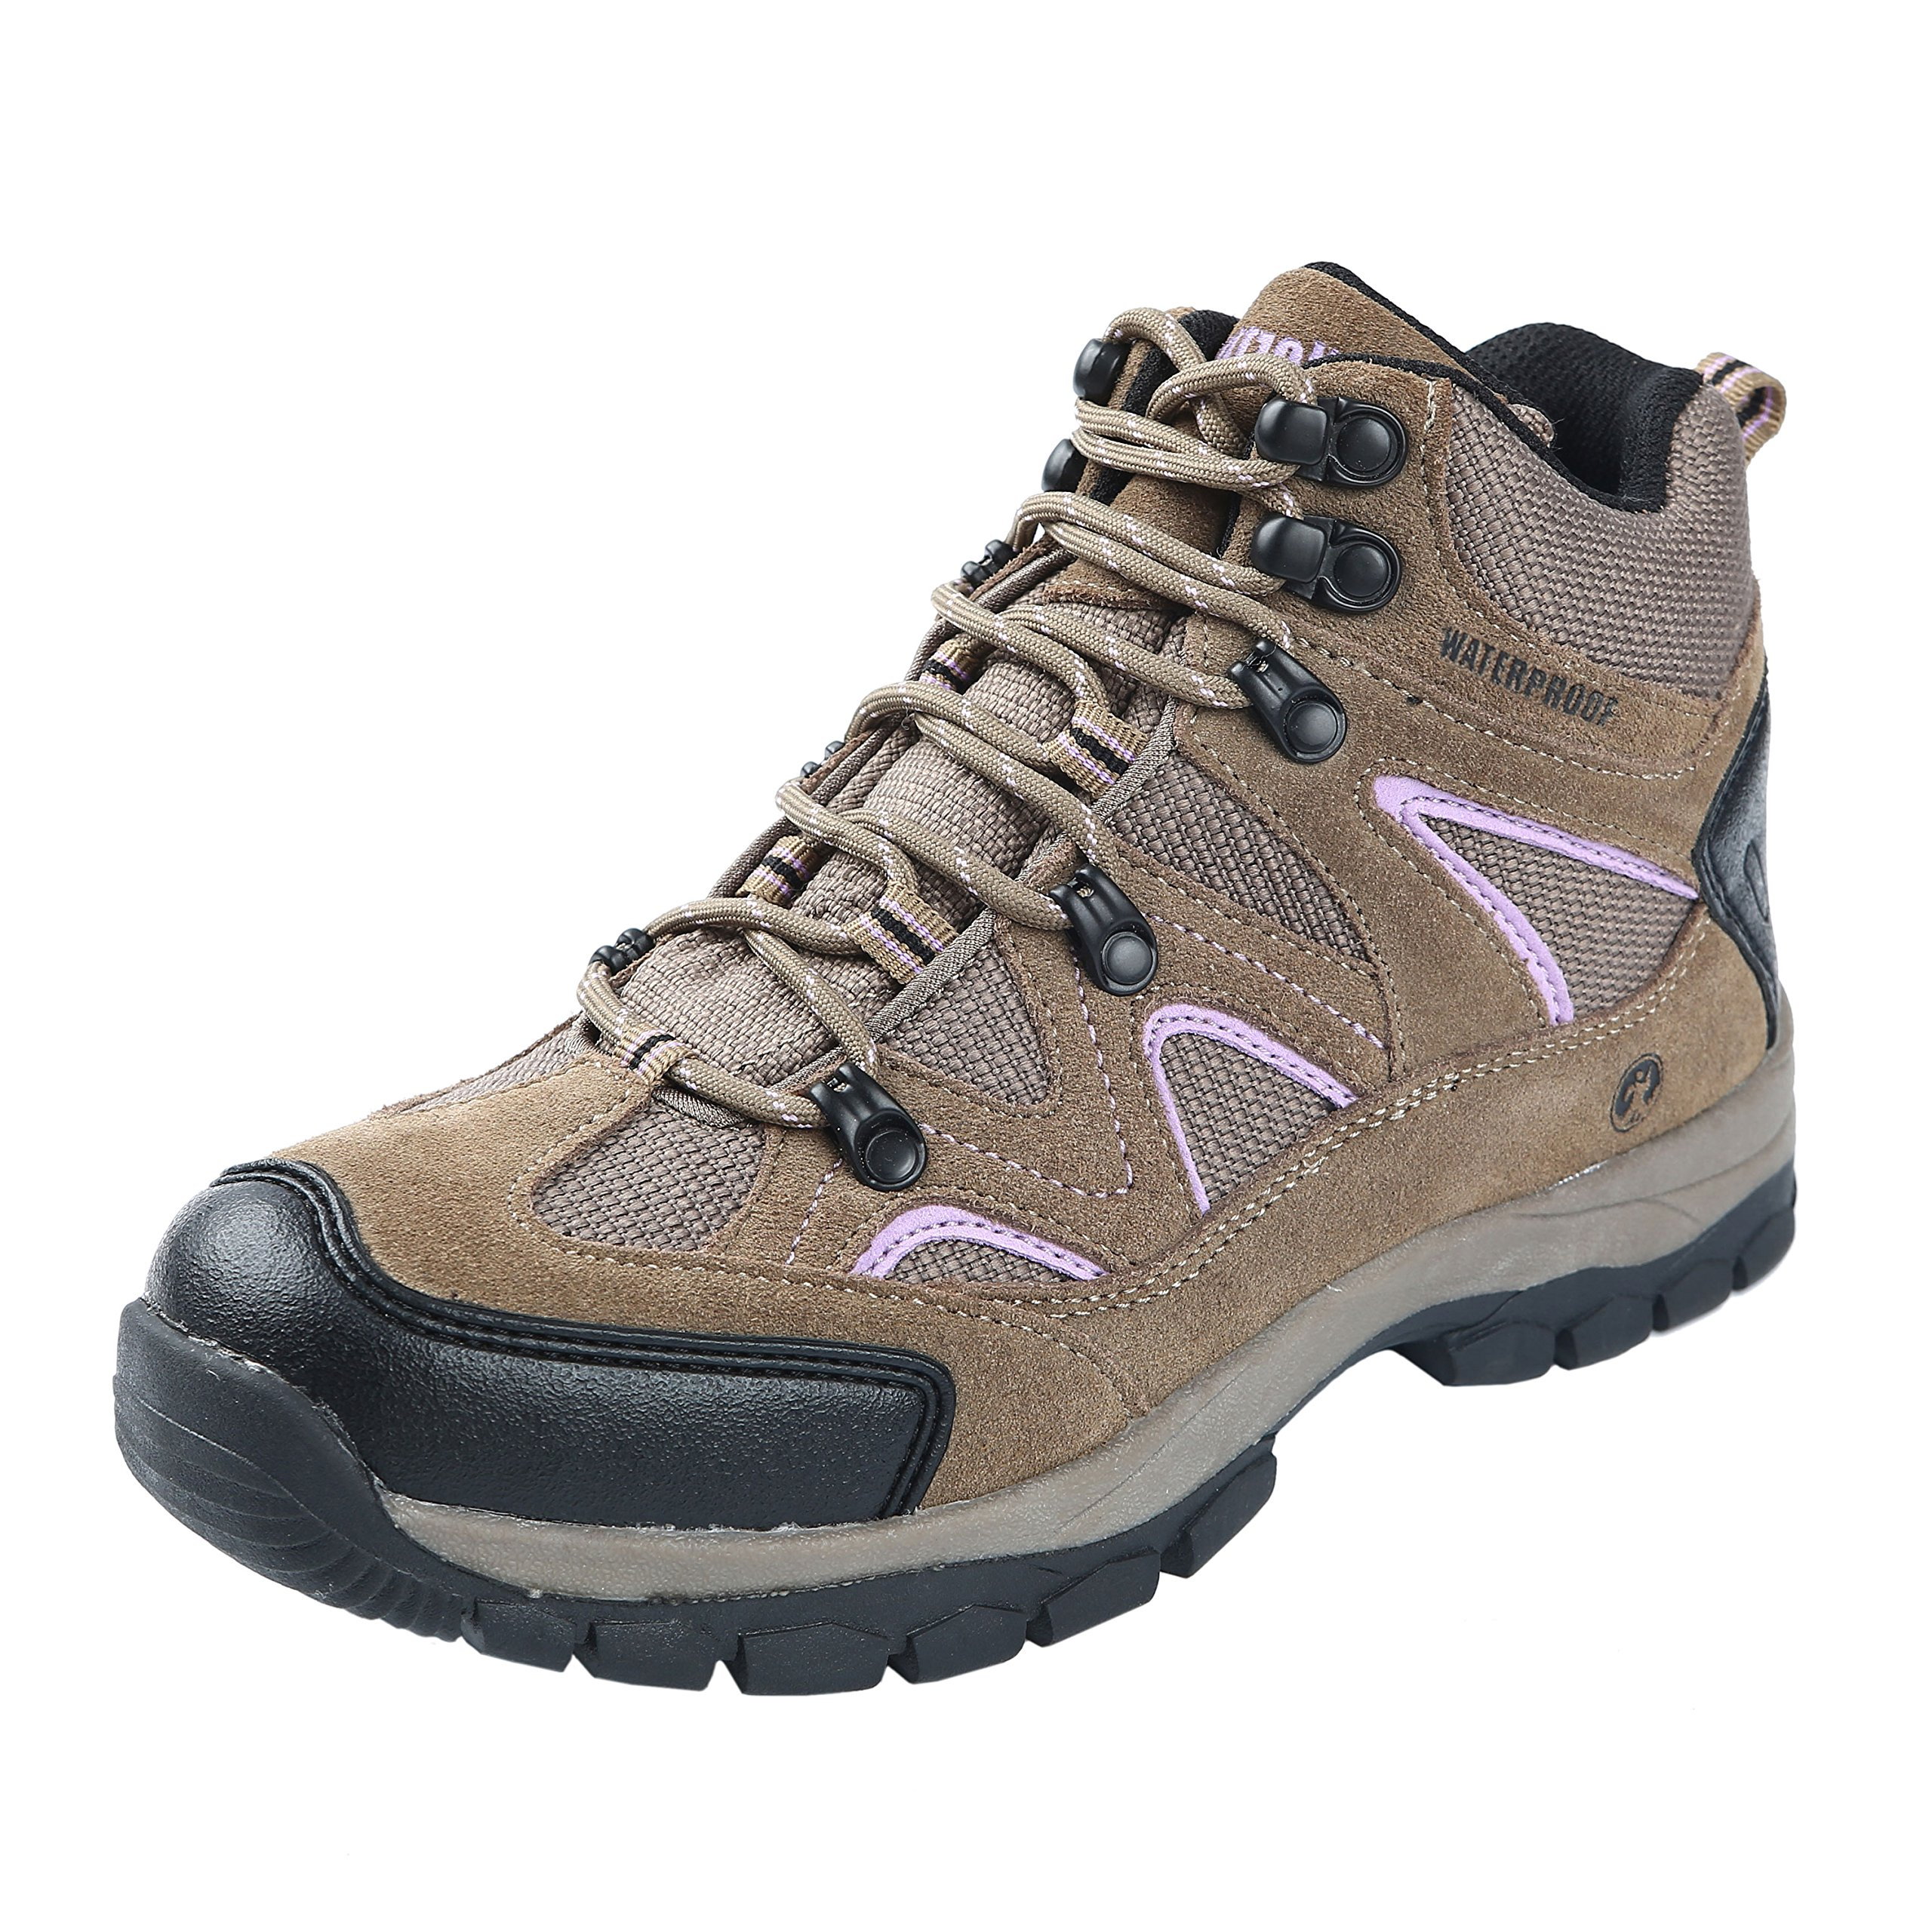 Northside Women's Snohomish Hiking Boot, Tan/Periwinkle, 7 M US by Northside (Image #1)